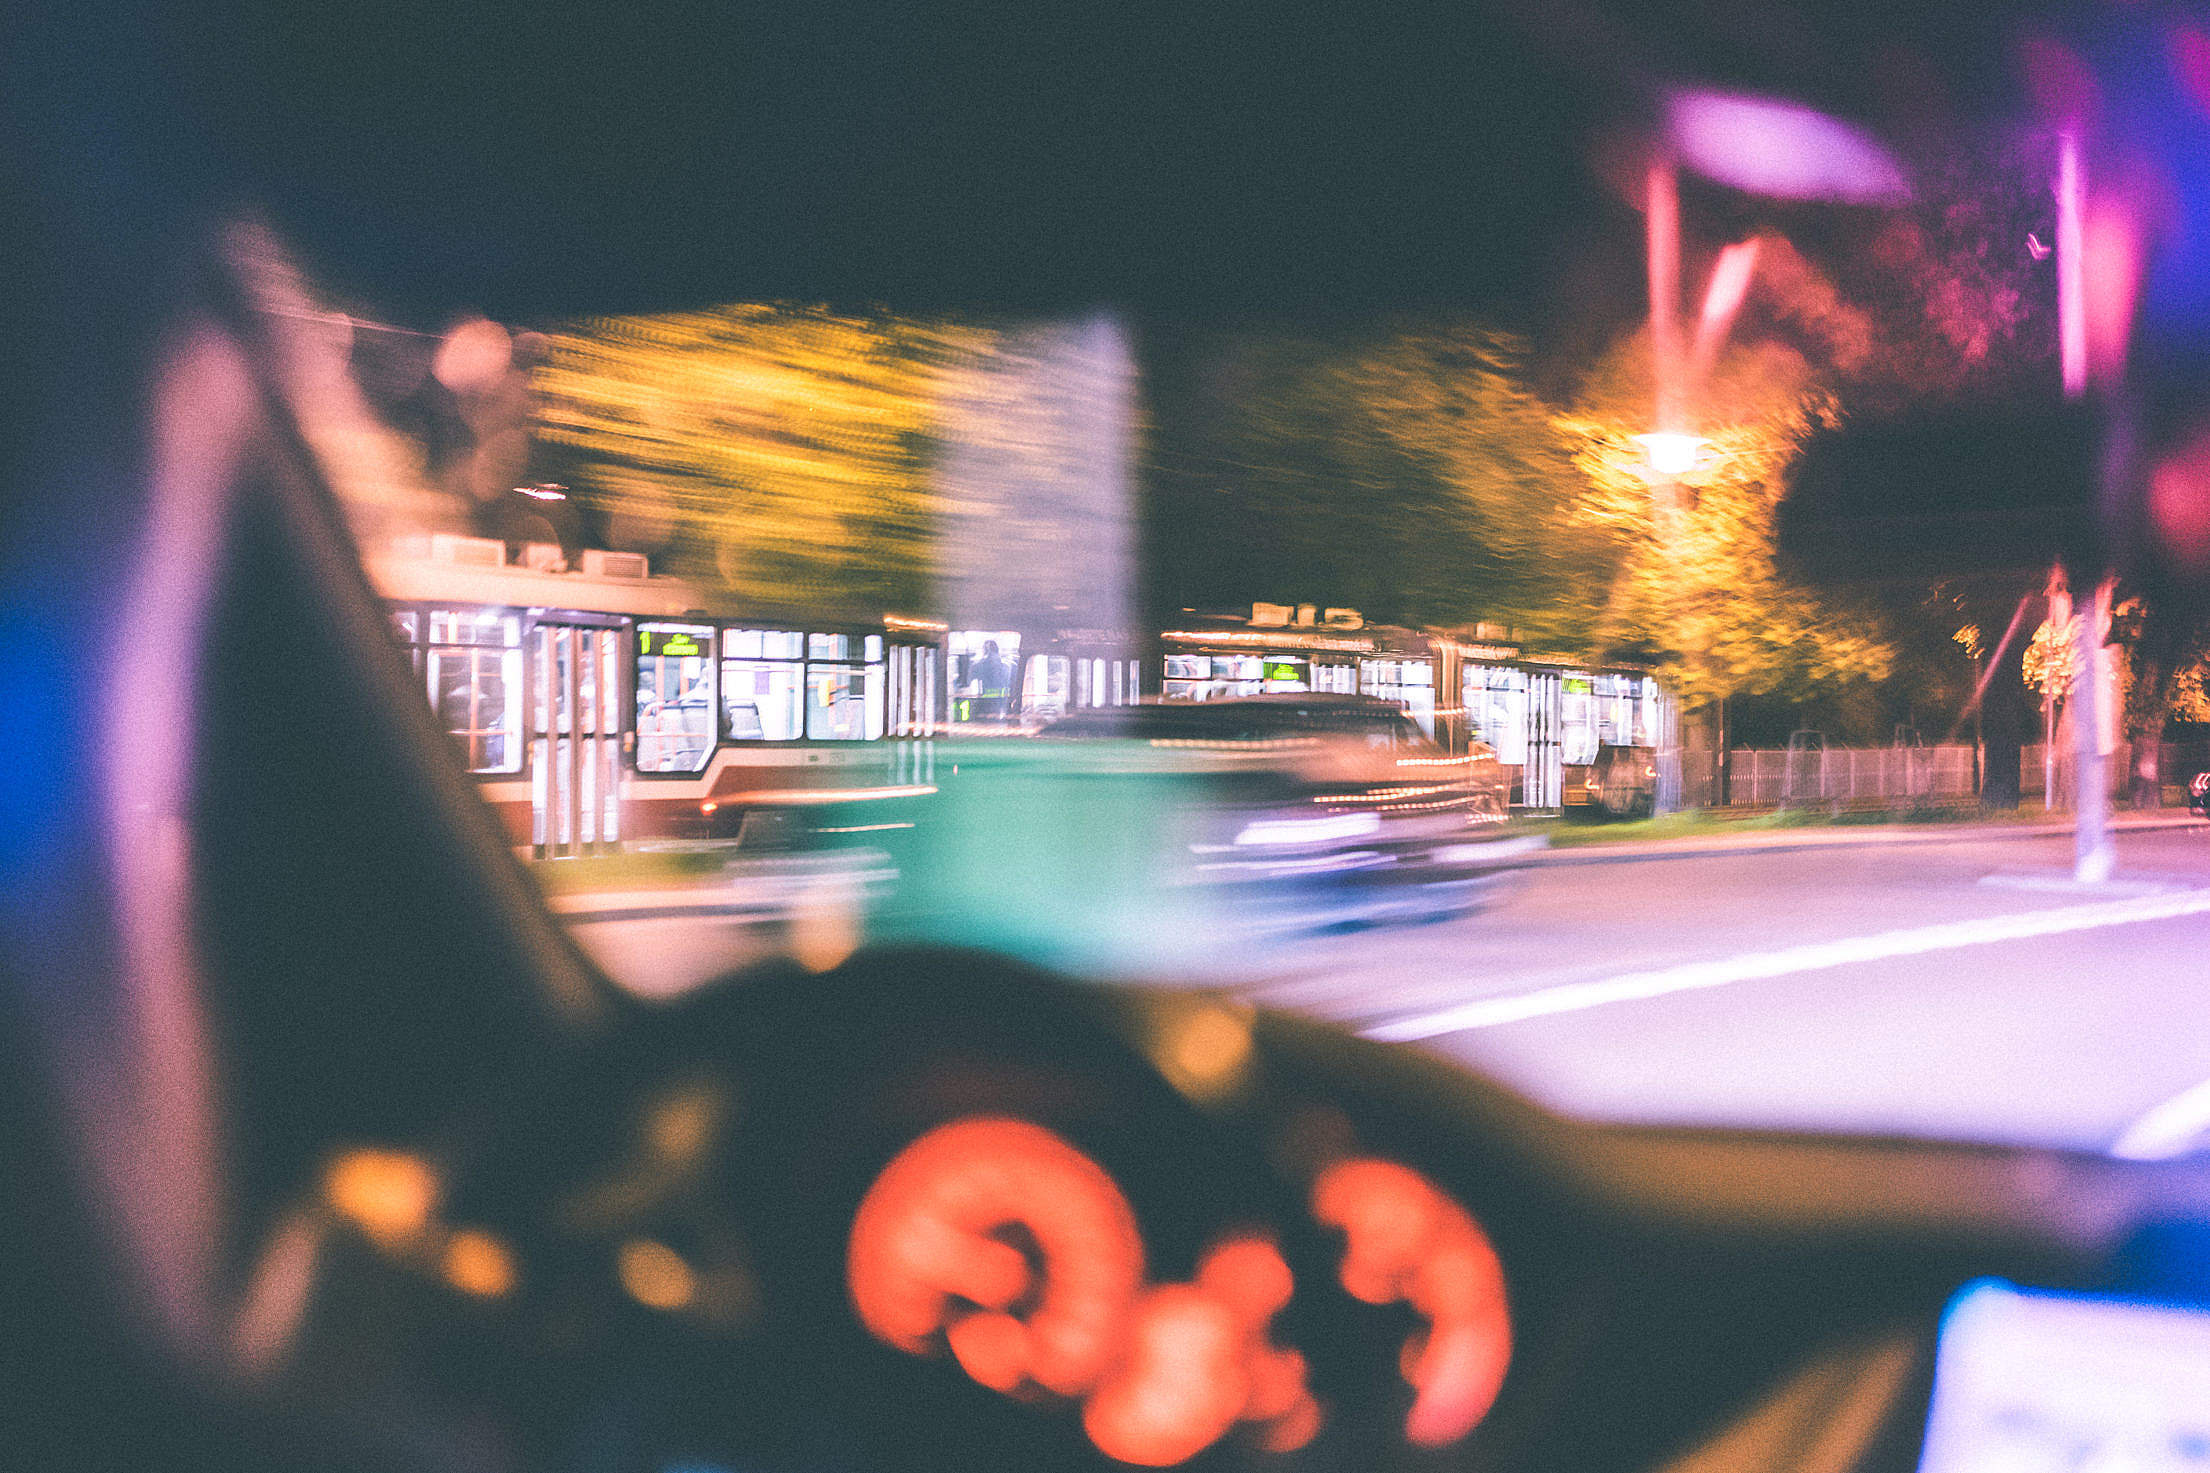 Driver Racing Against City Tram at Night Free Stock Photo